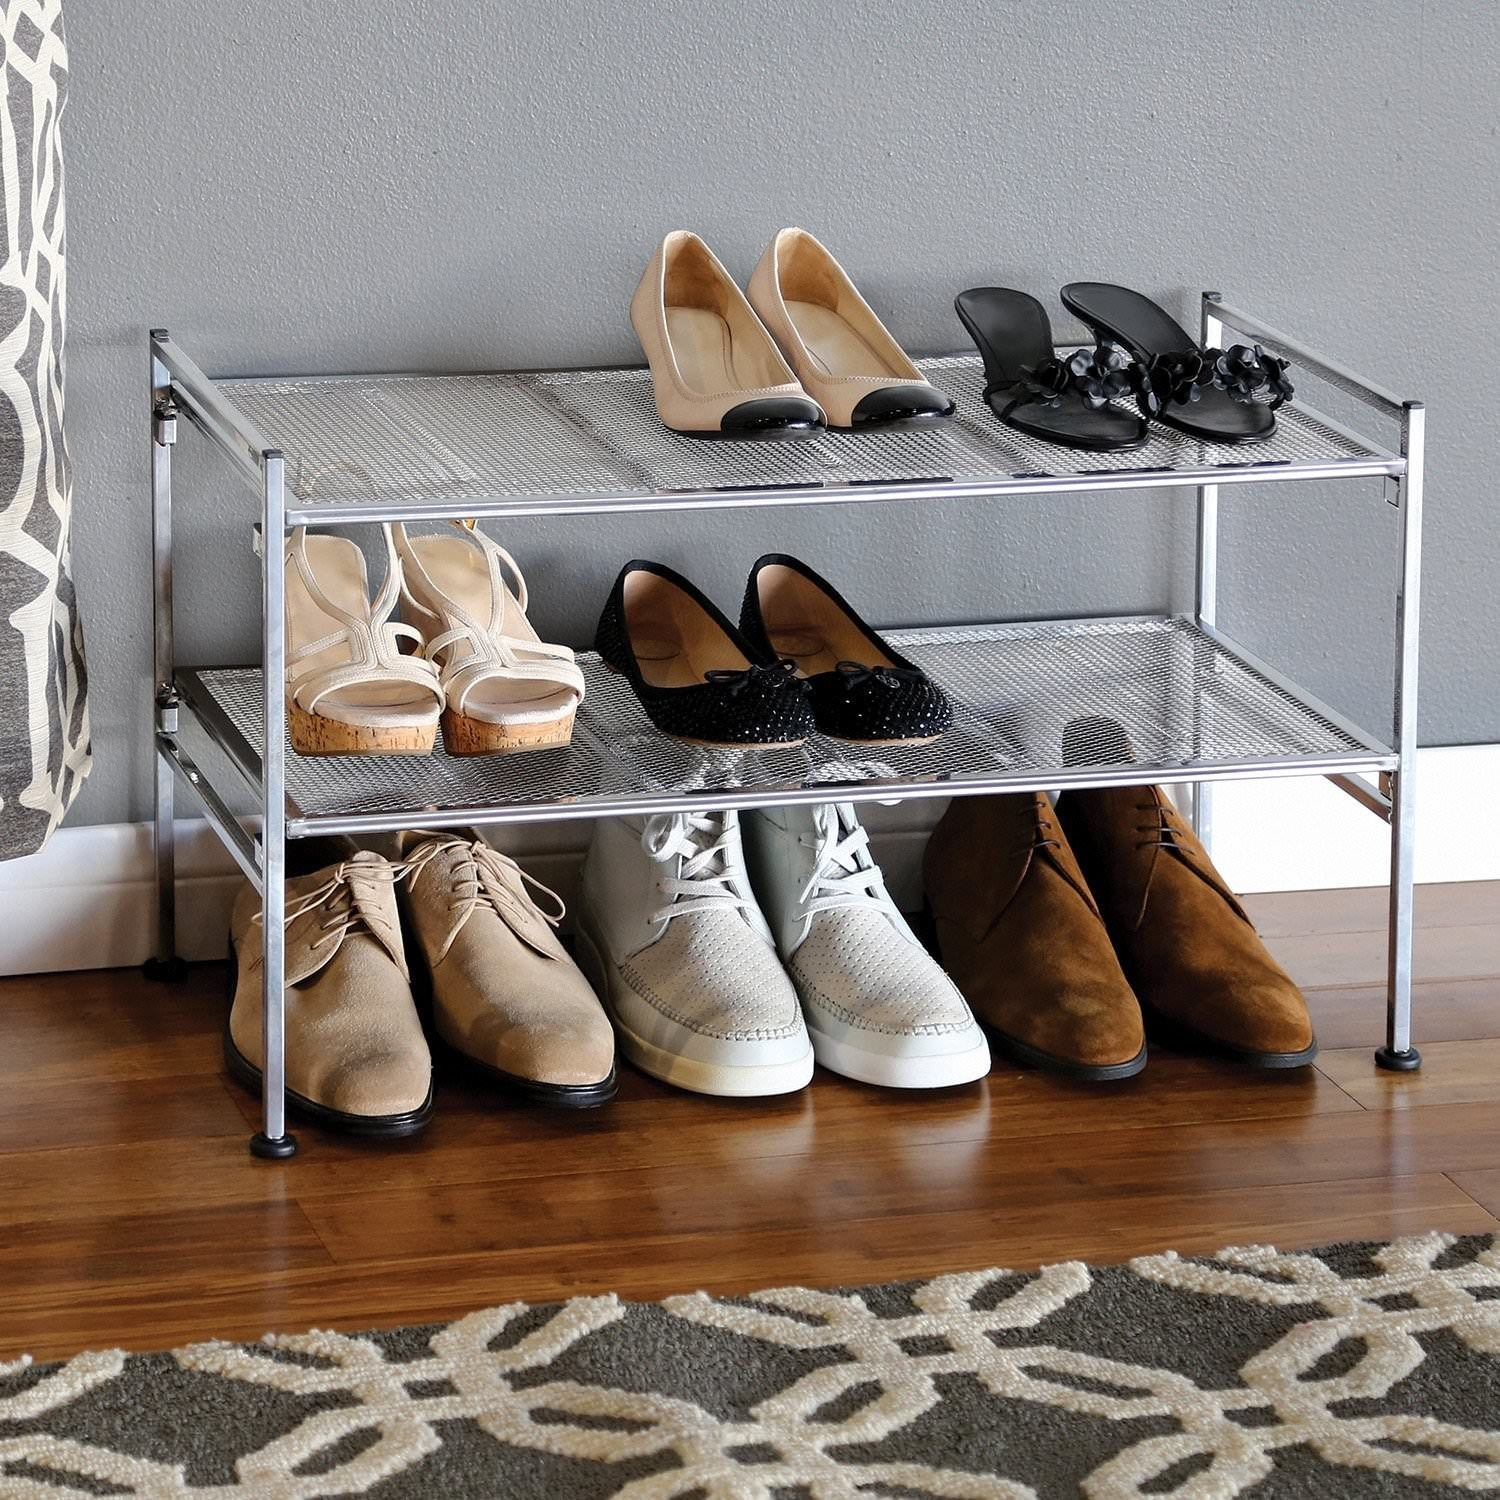 two shelf shoe rack with shoes on and under it